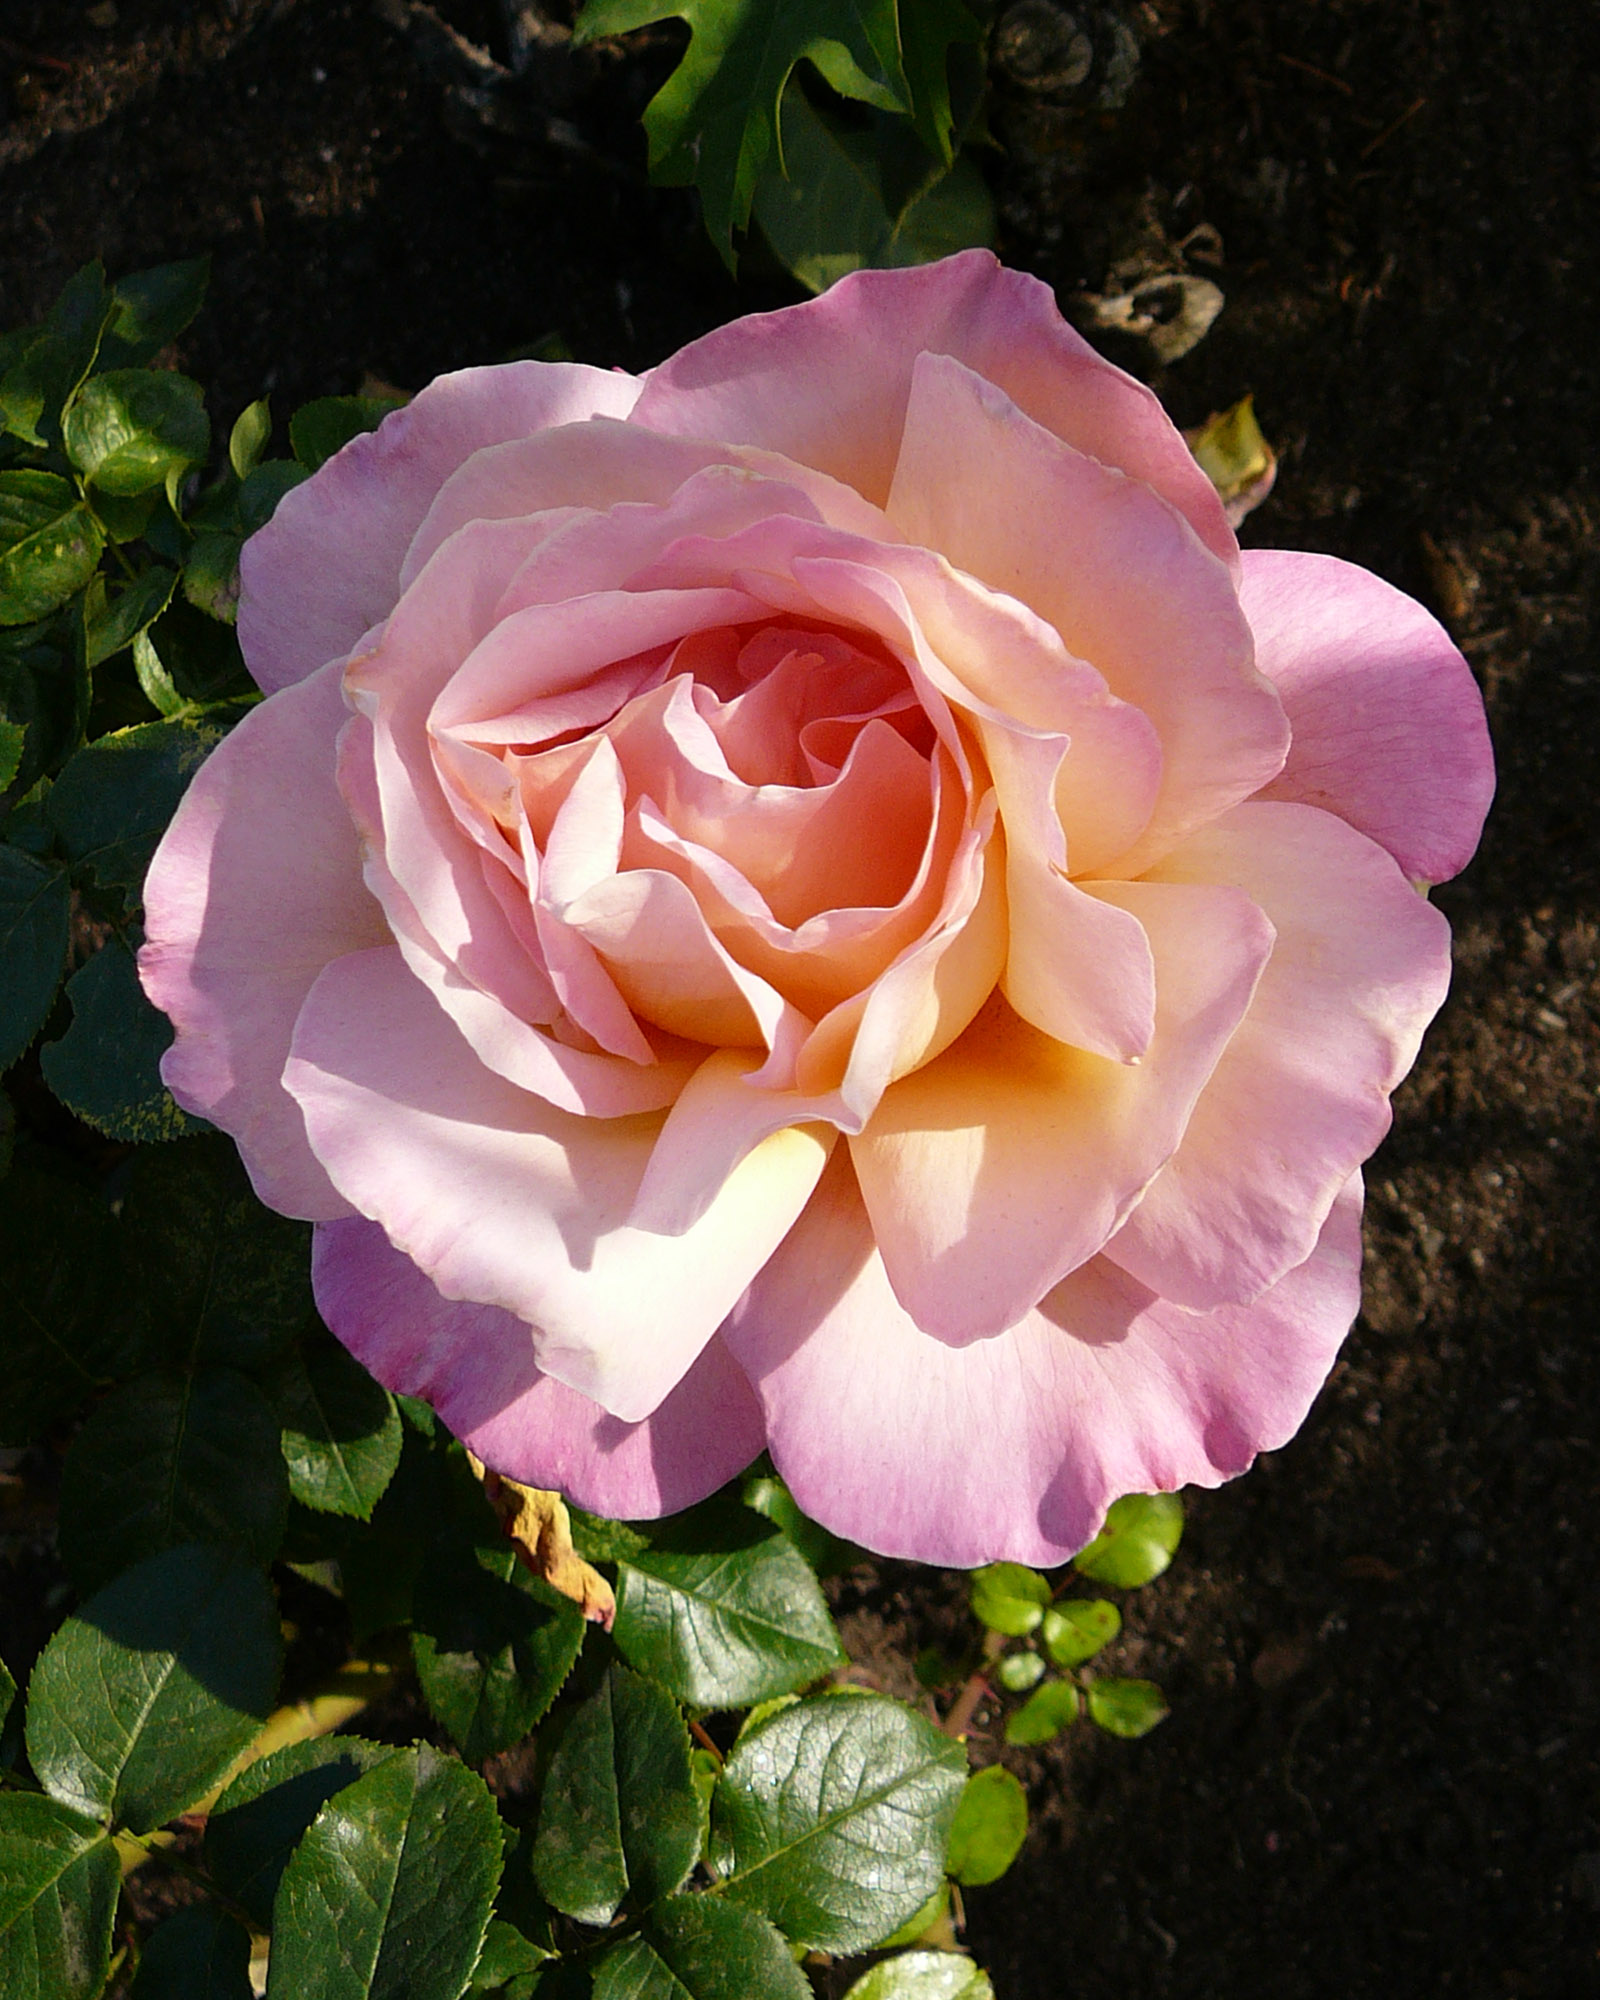 Amazing Wedding Pink Rose Bouquet Pictures And Fresh Flowers Photos